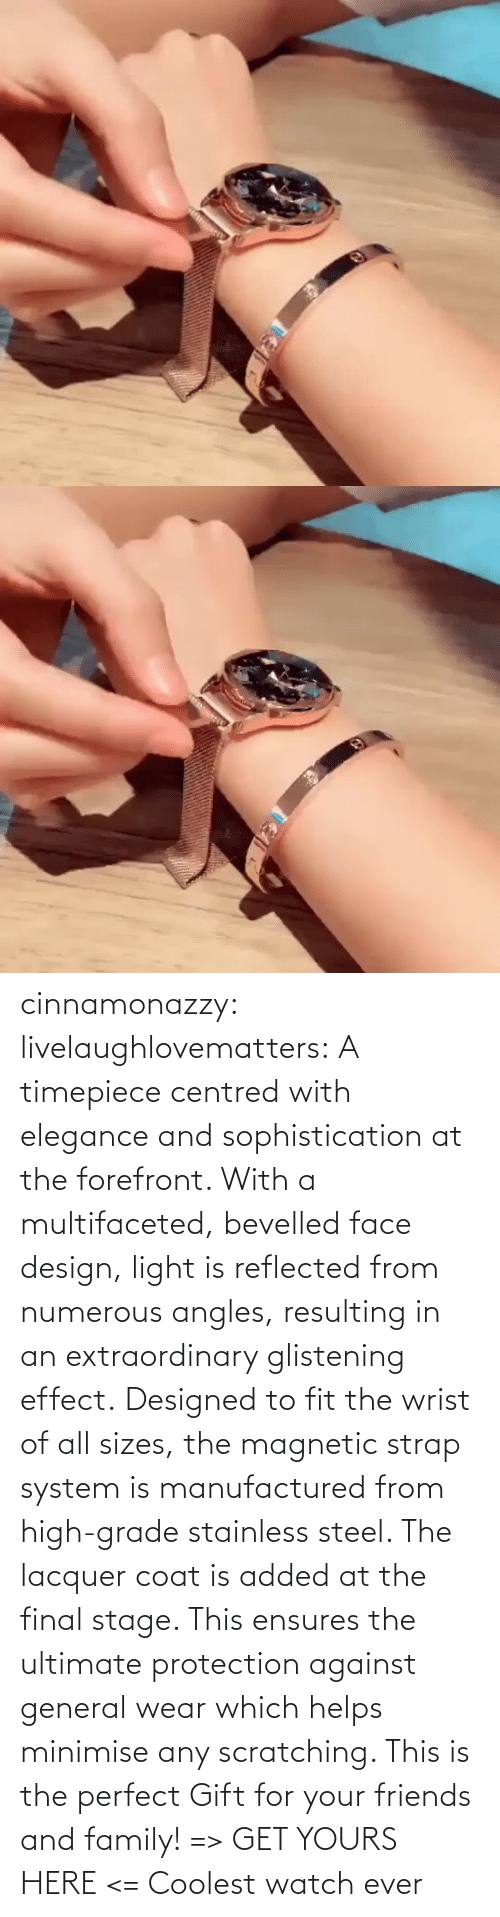 Image: cinnamonazzy:  livelaughlovematters: A timepiece centred with elegance and sophistication at the forefront. With a multifaceted, bevelled face design, light is reflected from numerous angles, resulting in an extraordinary glistening effect. Designed to fit the wrist of all sizes, the magnetic strap system is manufactured from high-grade stainless steel. The lacquer coat is added at the final stage. This ensures the ultimate protection against general wear which helps minimise any scratching. This is the perfect Gift for your friends and family! => GET YOURS HERE <=    Coolest watch ever